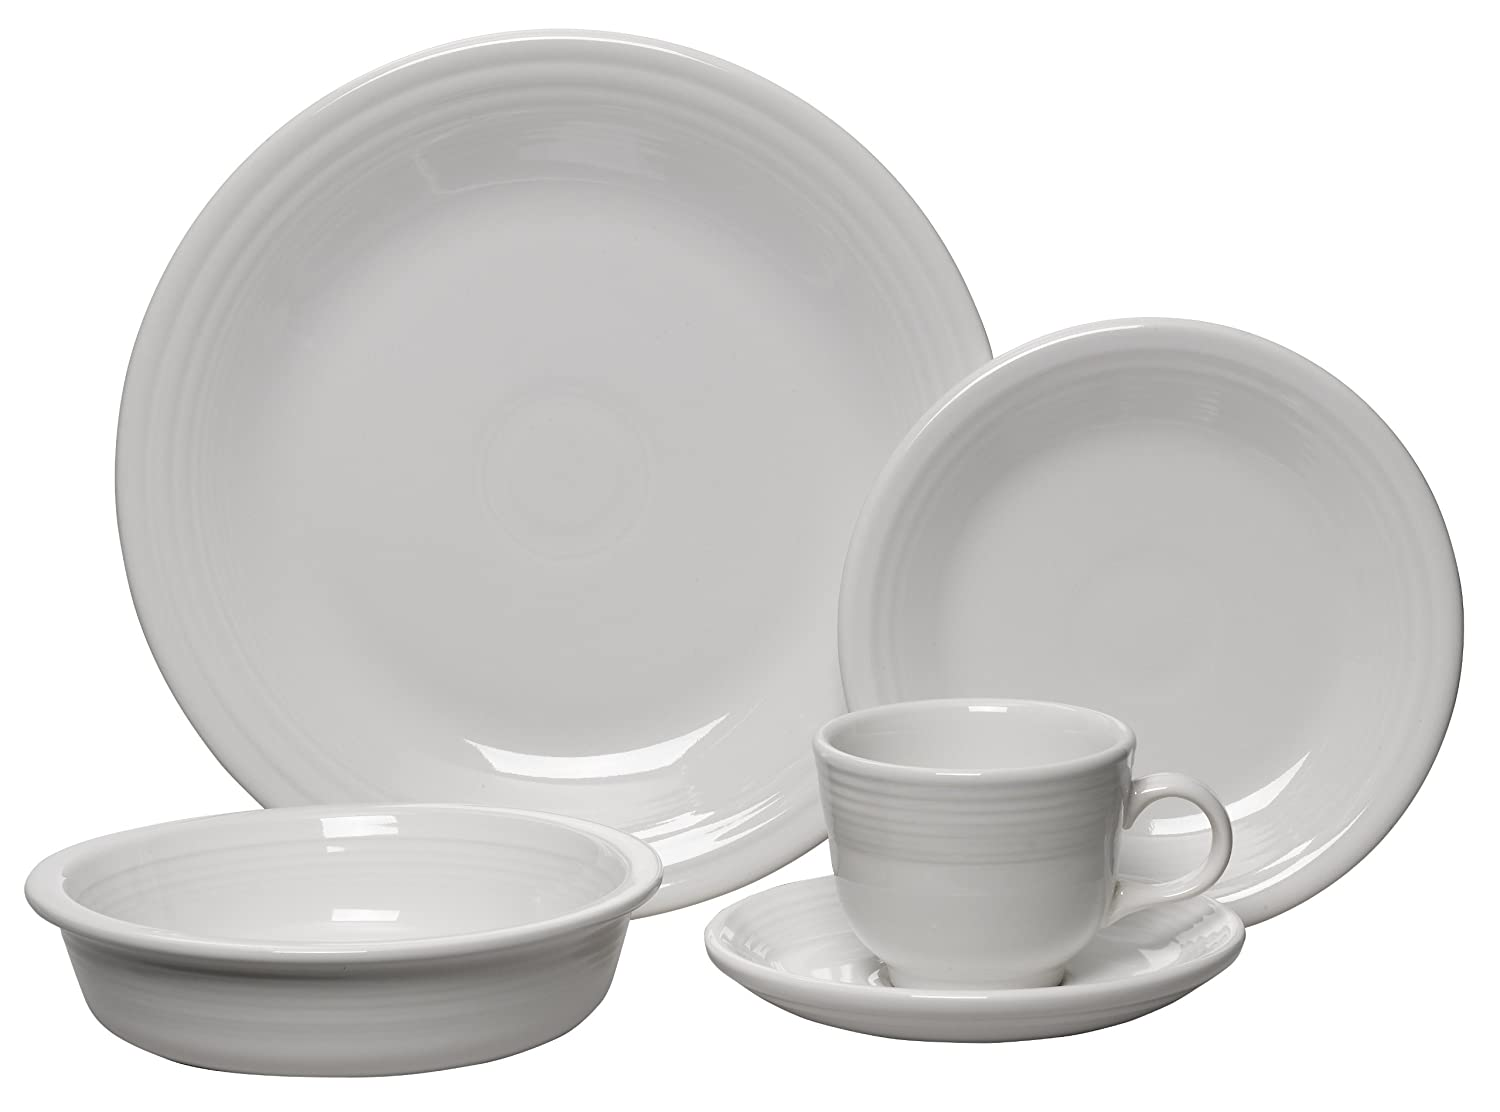 amazoncom fiesta piece place setting white kitchen  dining -